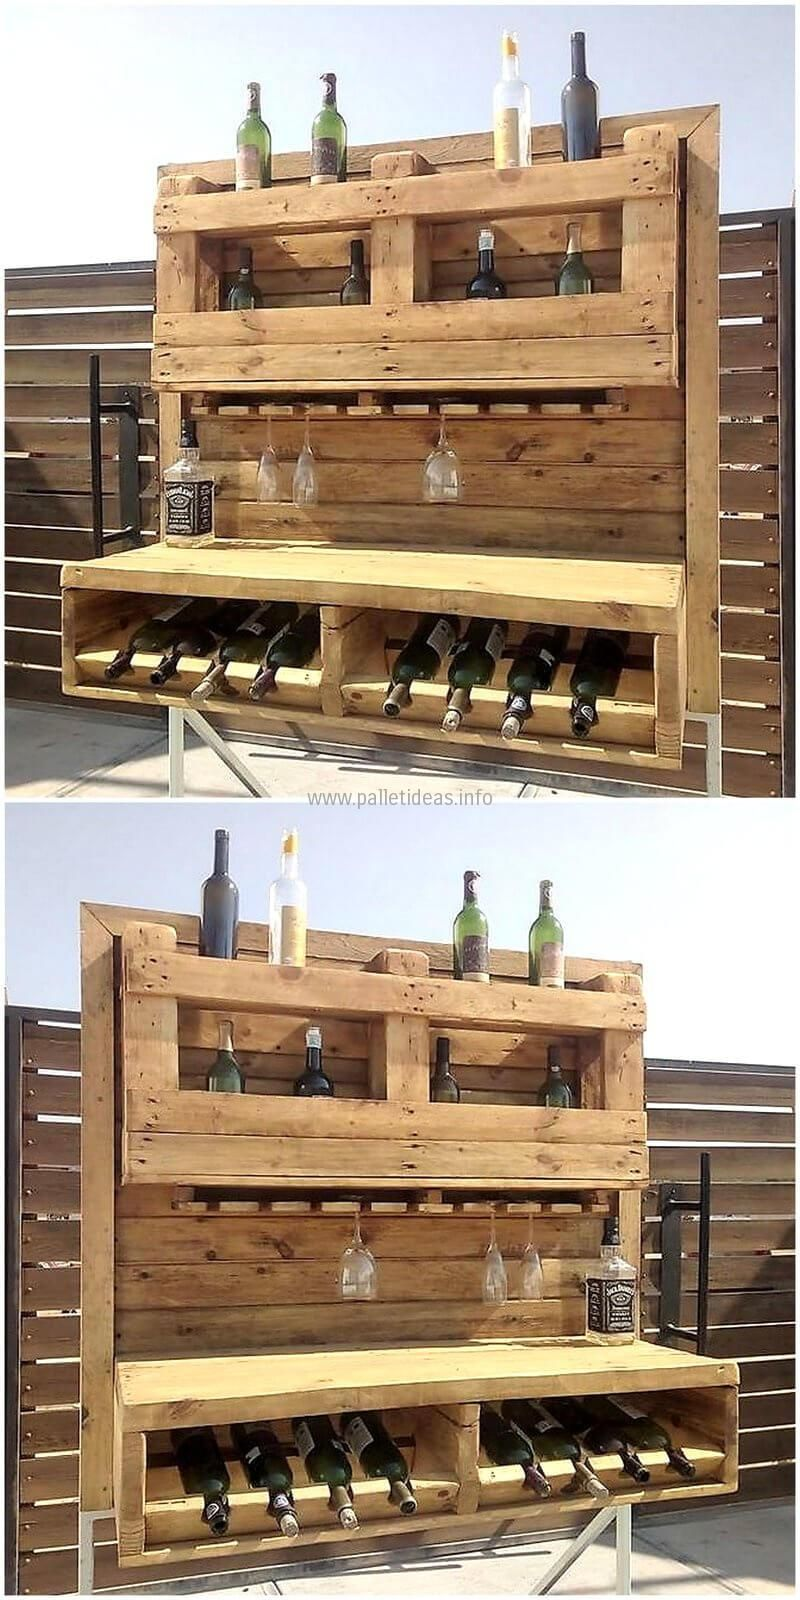 pallet wall bar idea | Pallet ideas | Pinterest | Partykeller